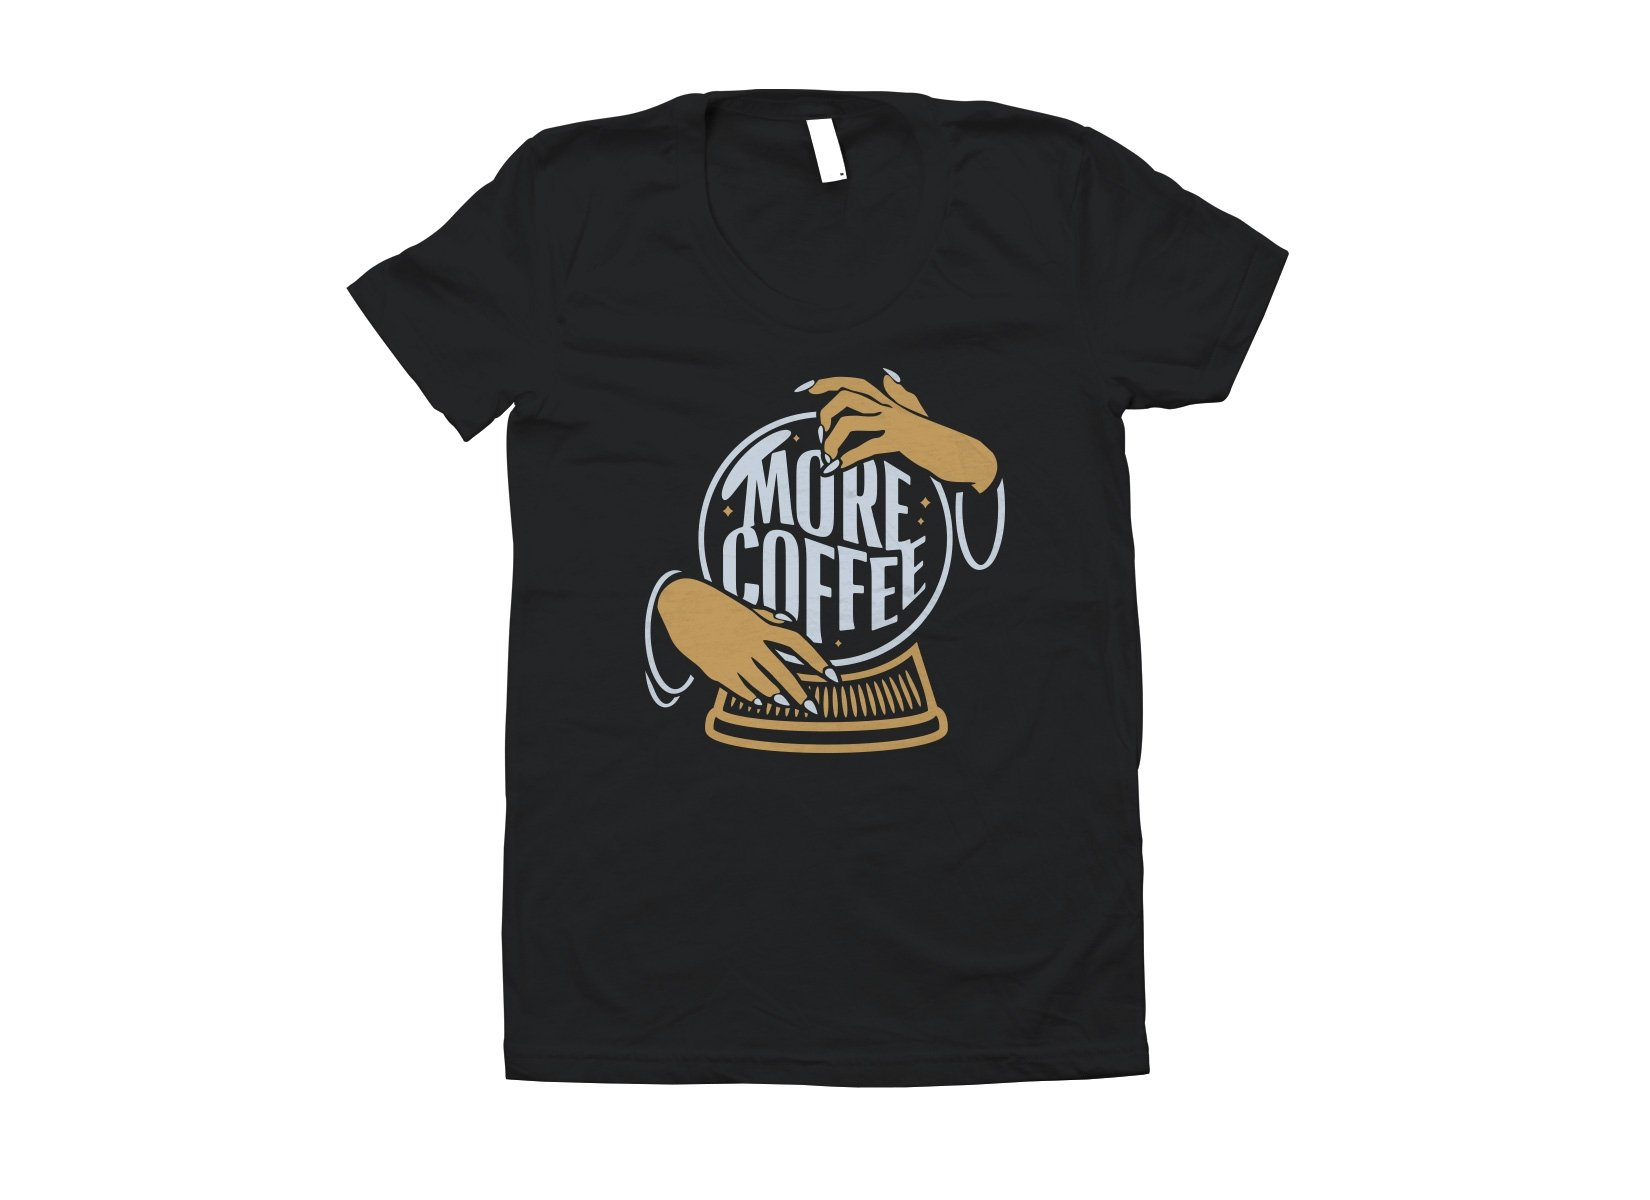 More Coffee on Juniors T-Shirt